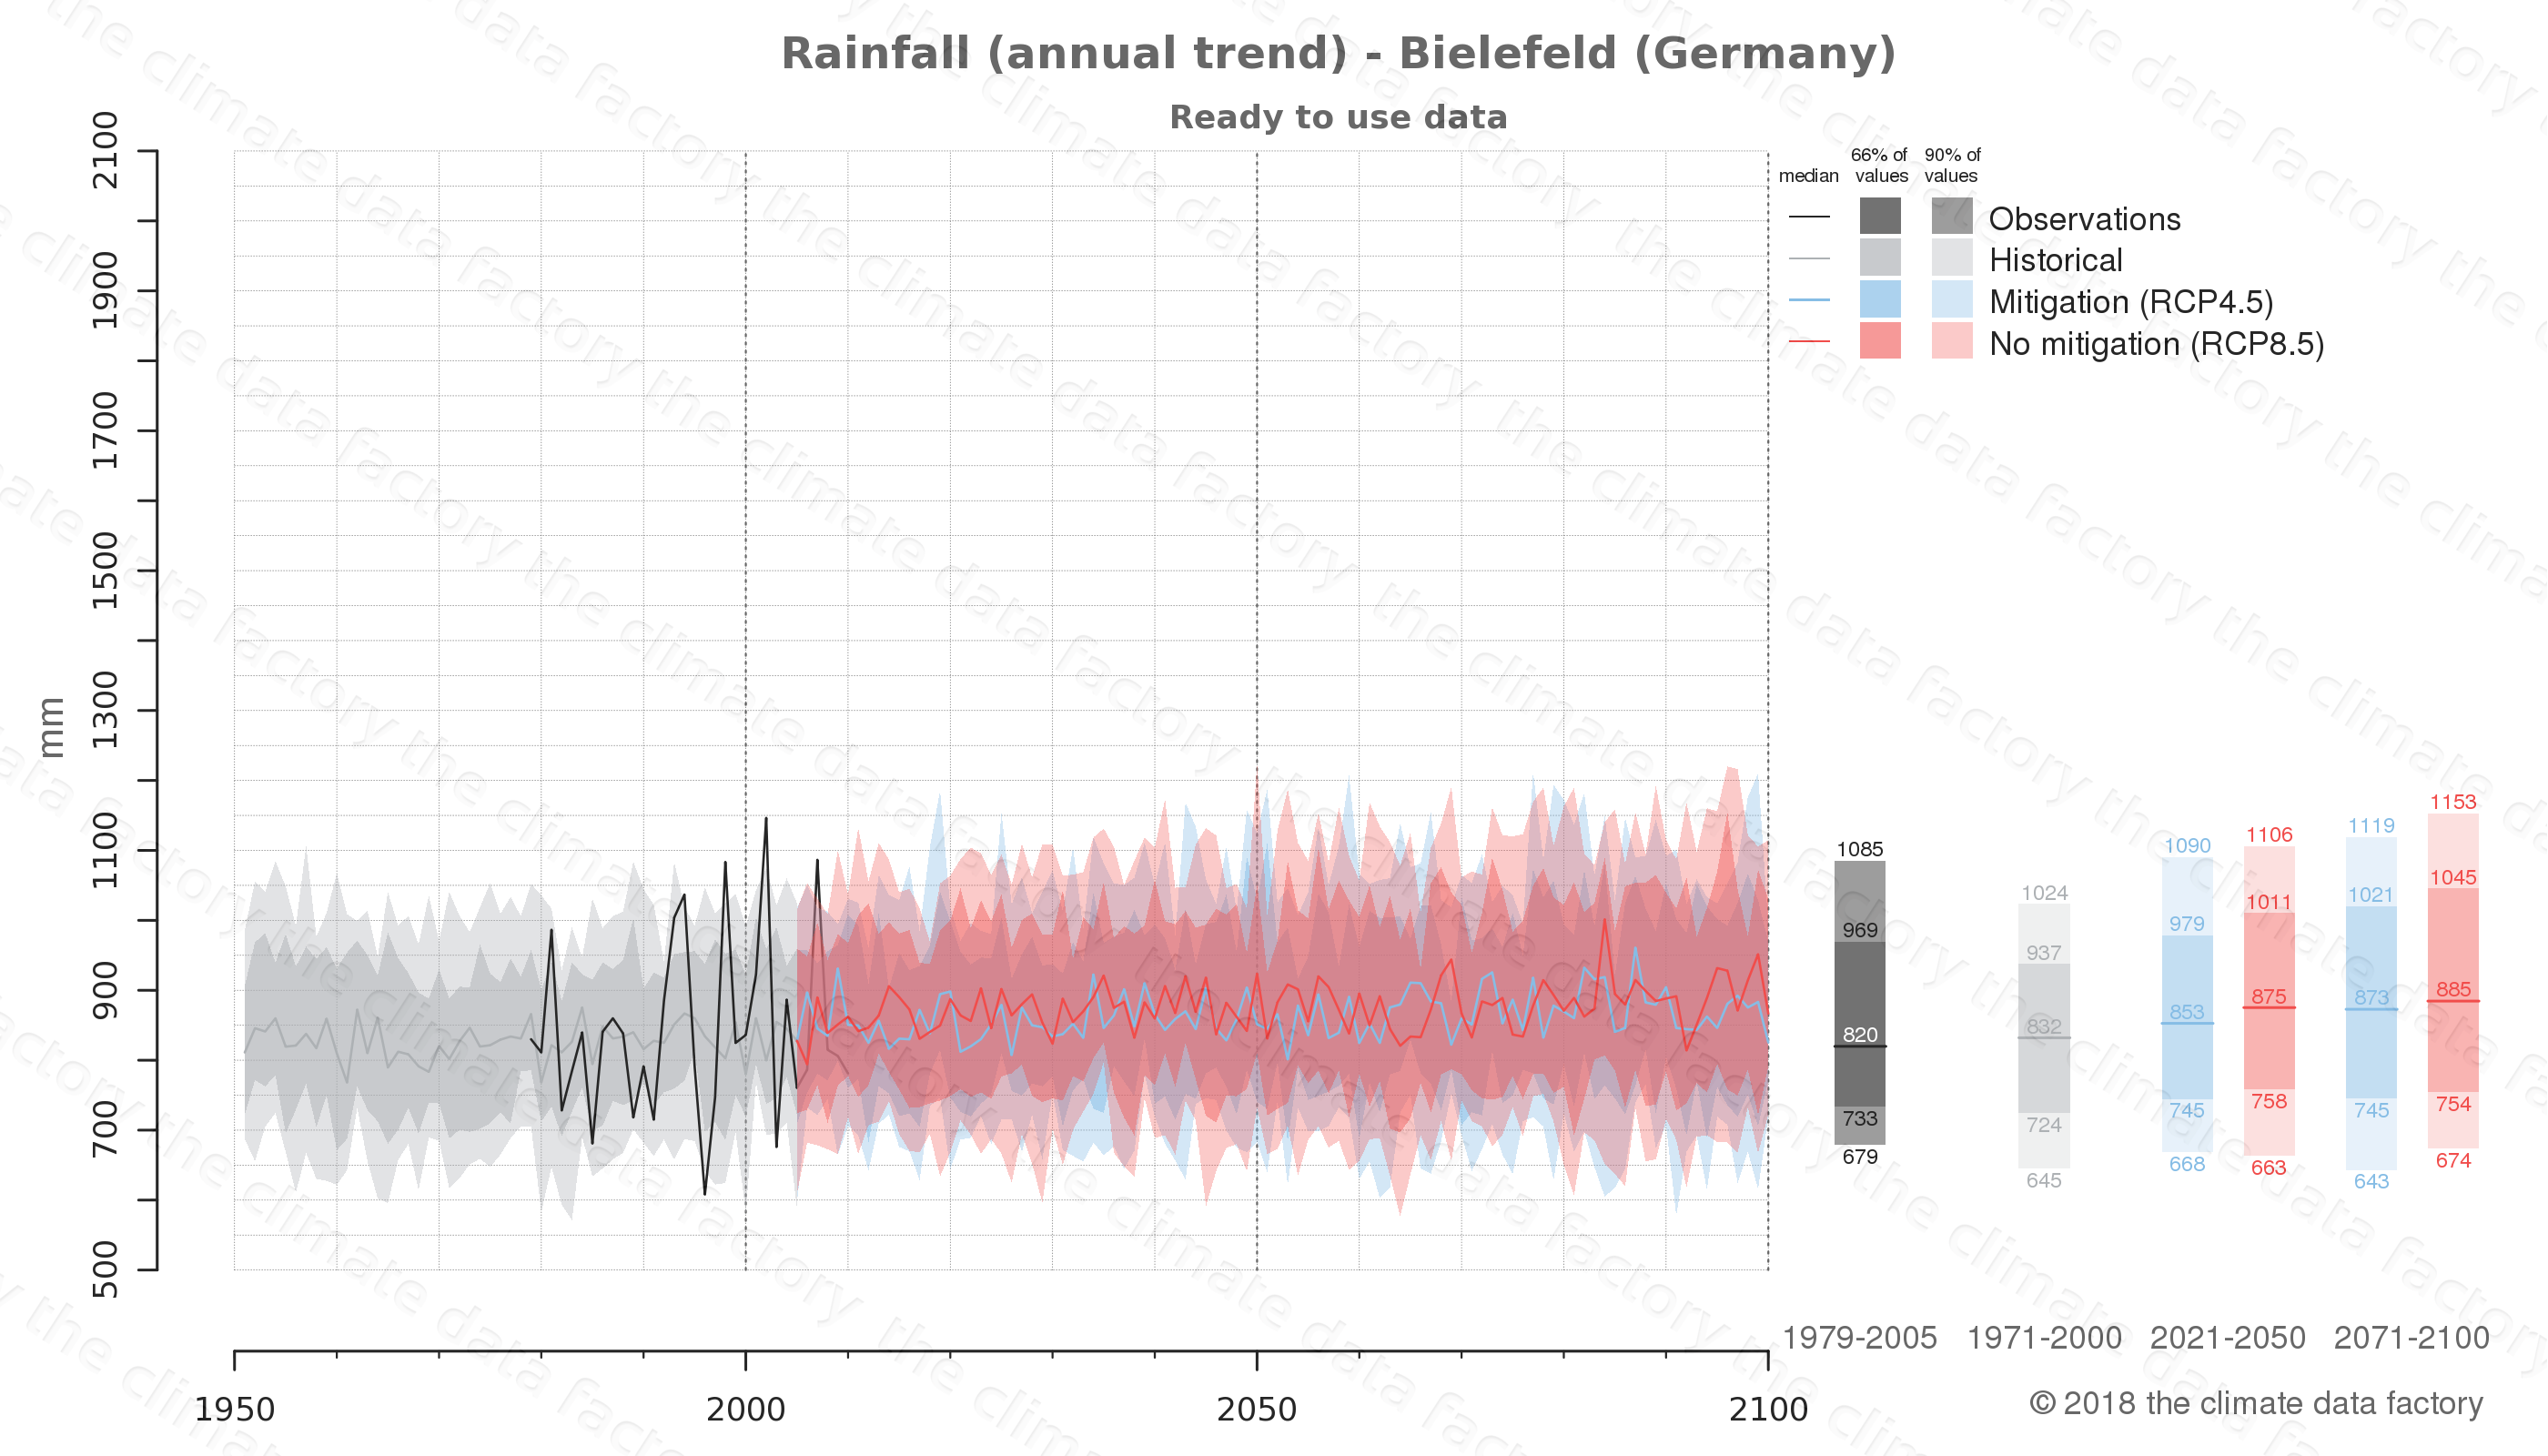 climate change data policy adaptation climate graph city data rainfall bielefeld germany